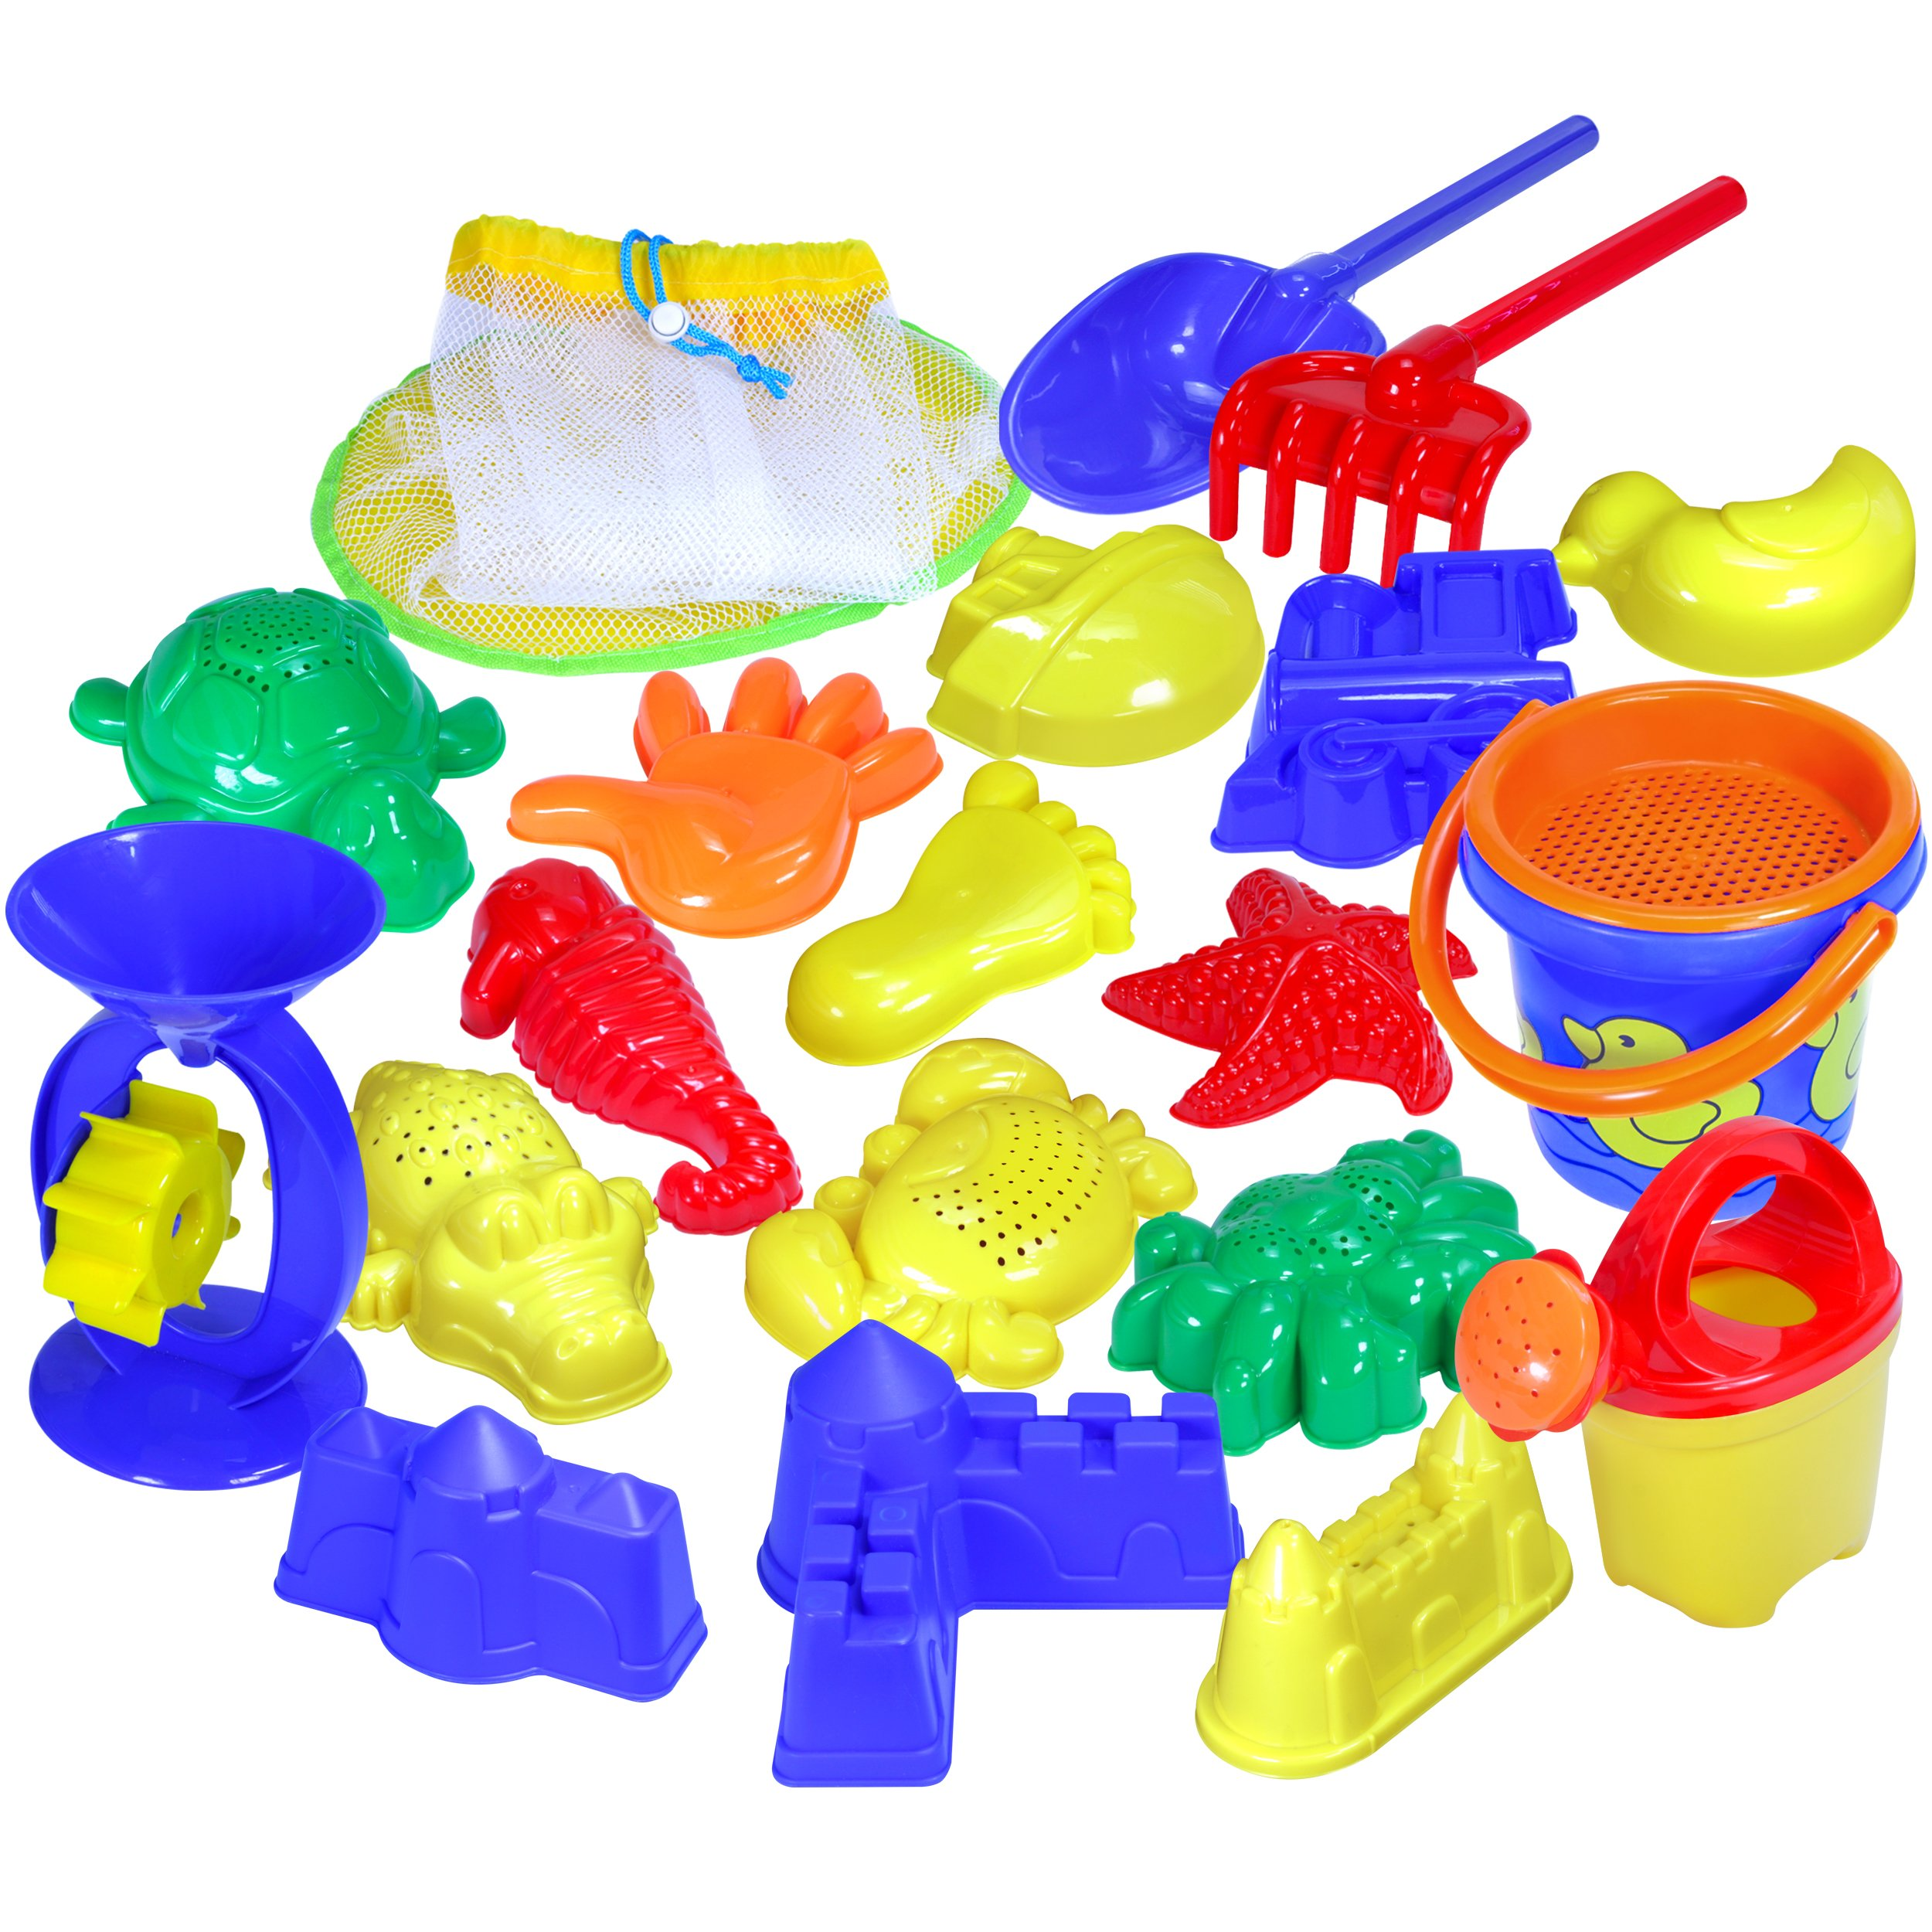 Beach Toys | Sand Toys Set for Kids | 20 Piece Beach Sand Toys in a Mesh Bag